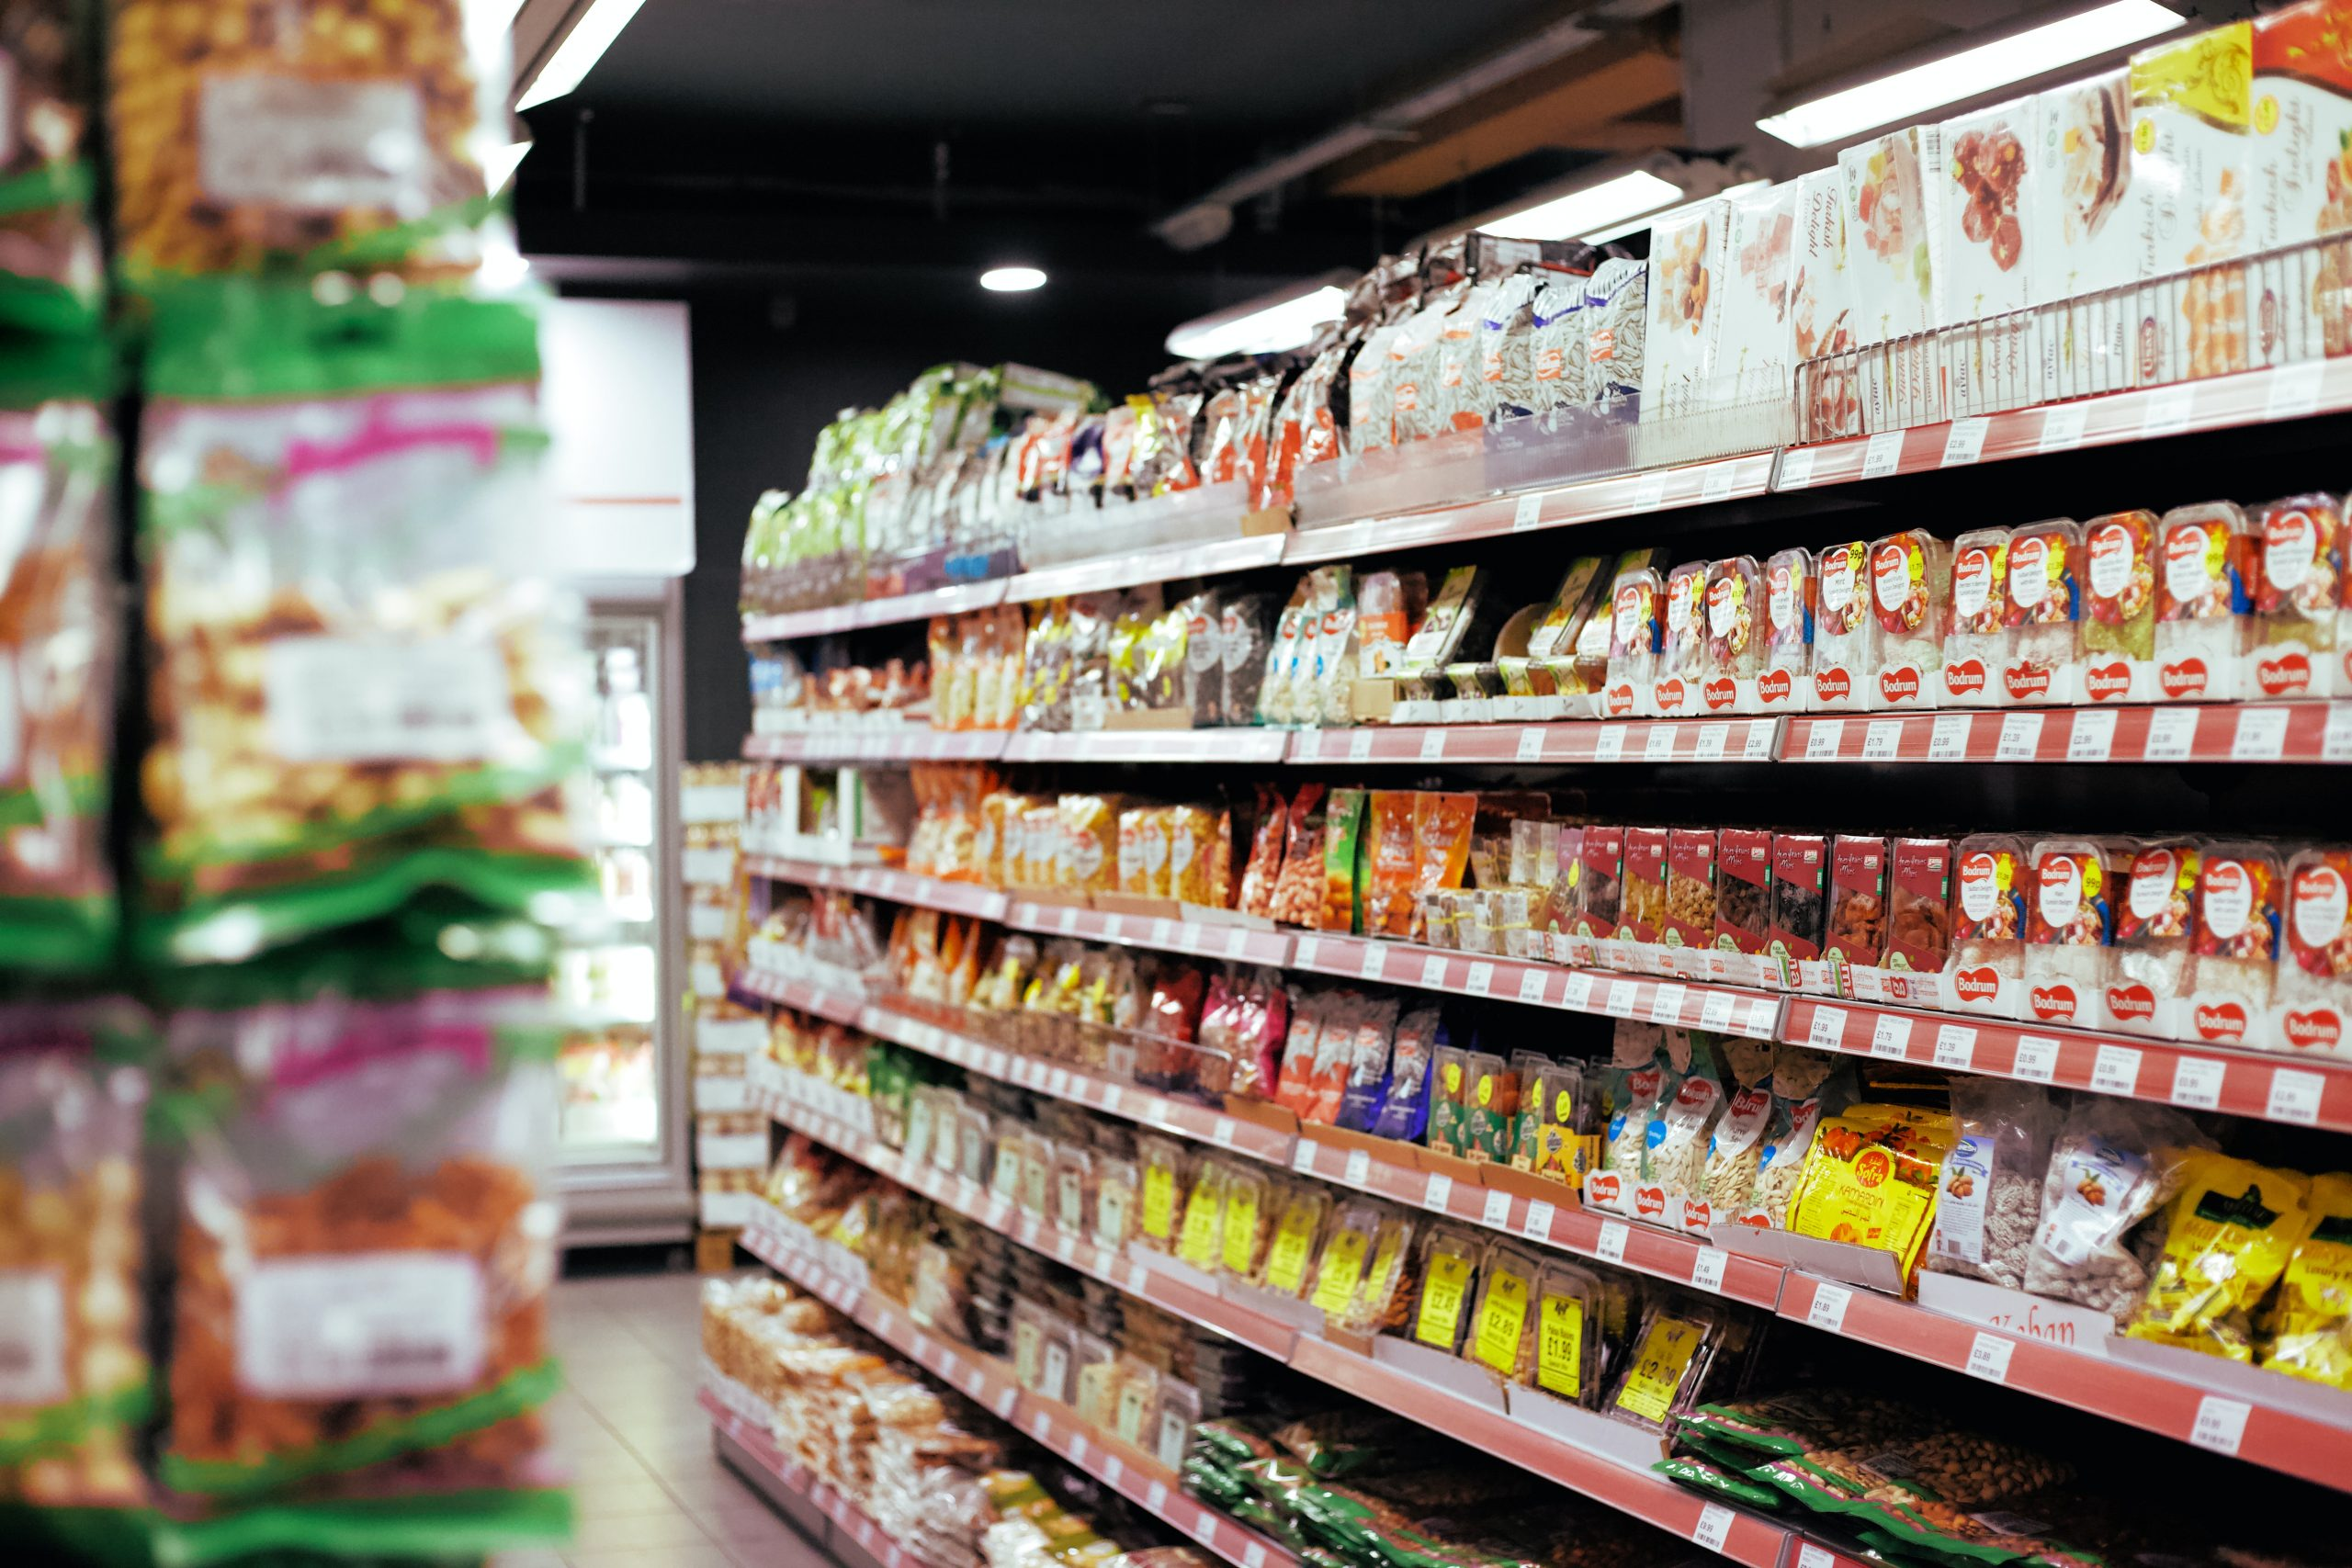 close up of food shelves in supermarket aisle